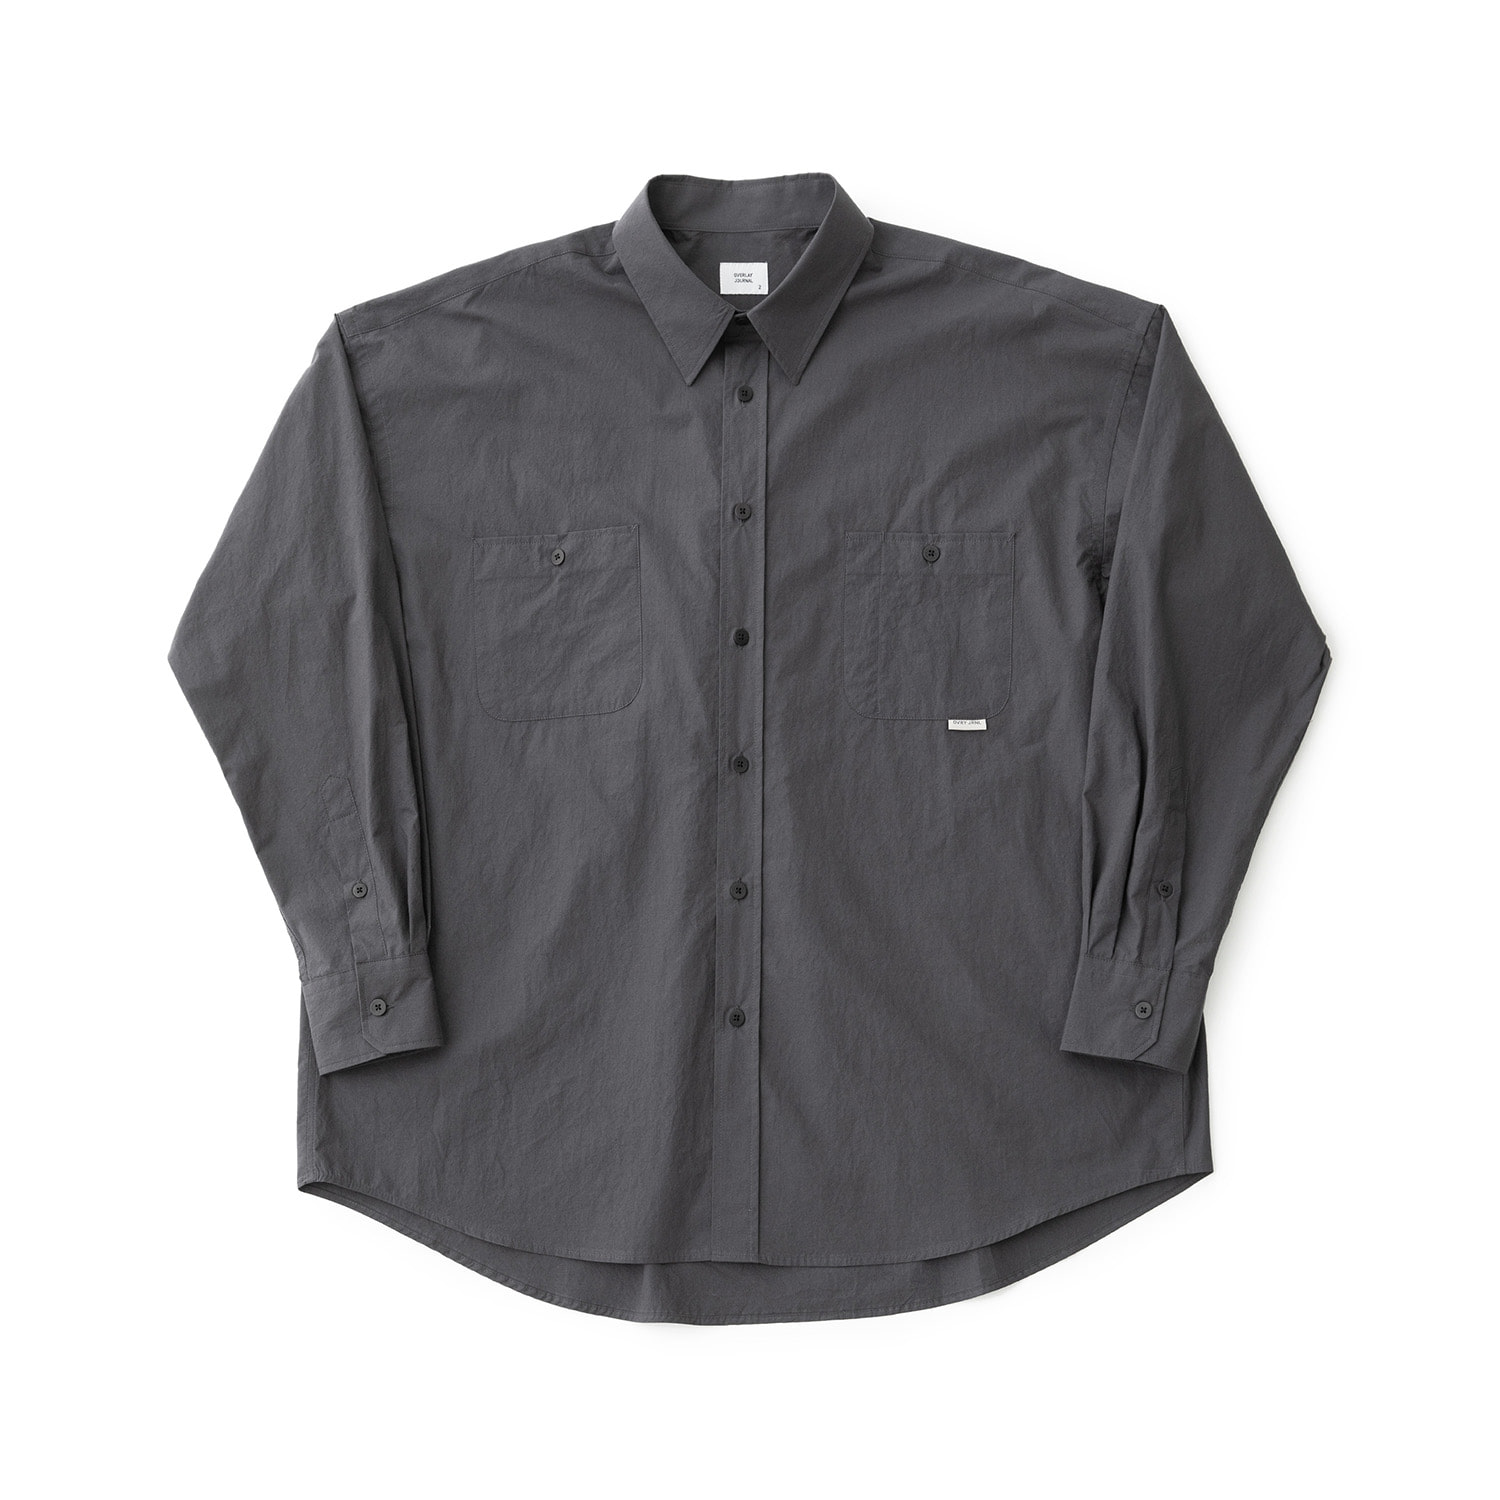 Broad Comfort Shirt (Charcoal)